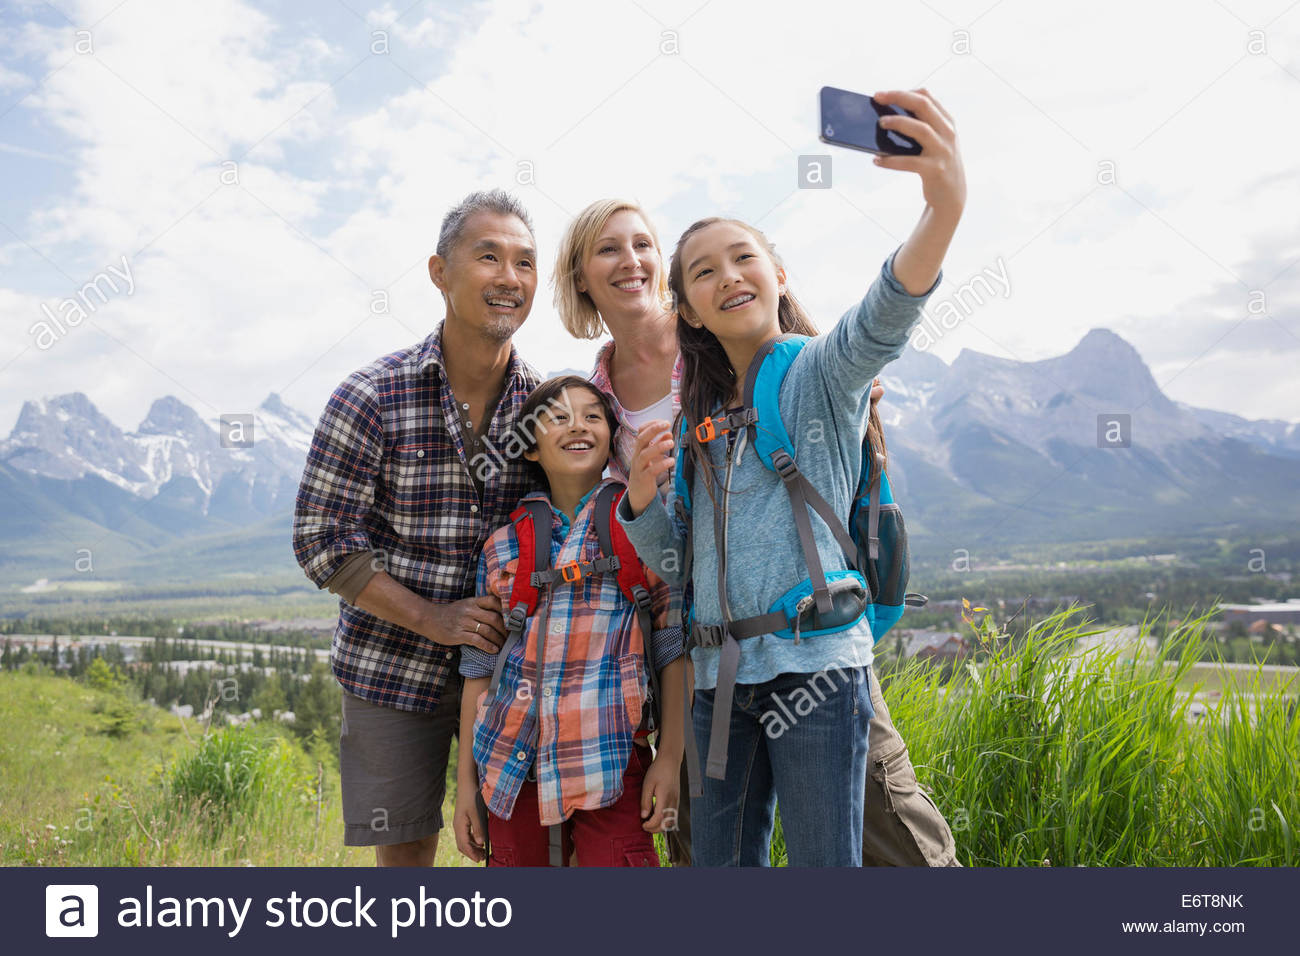 Family taking cell phone picture on rural hillside - Stock Photo